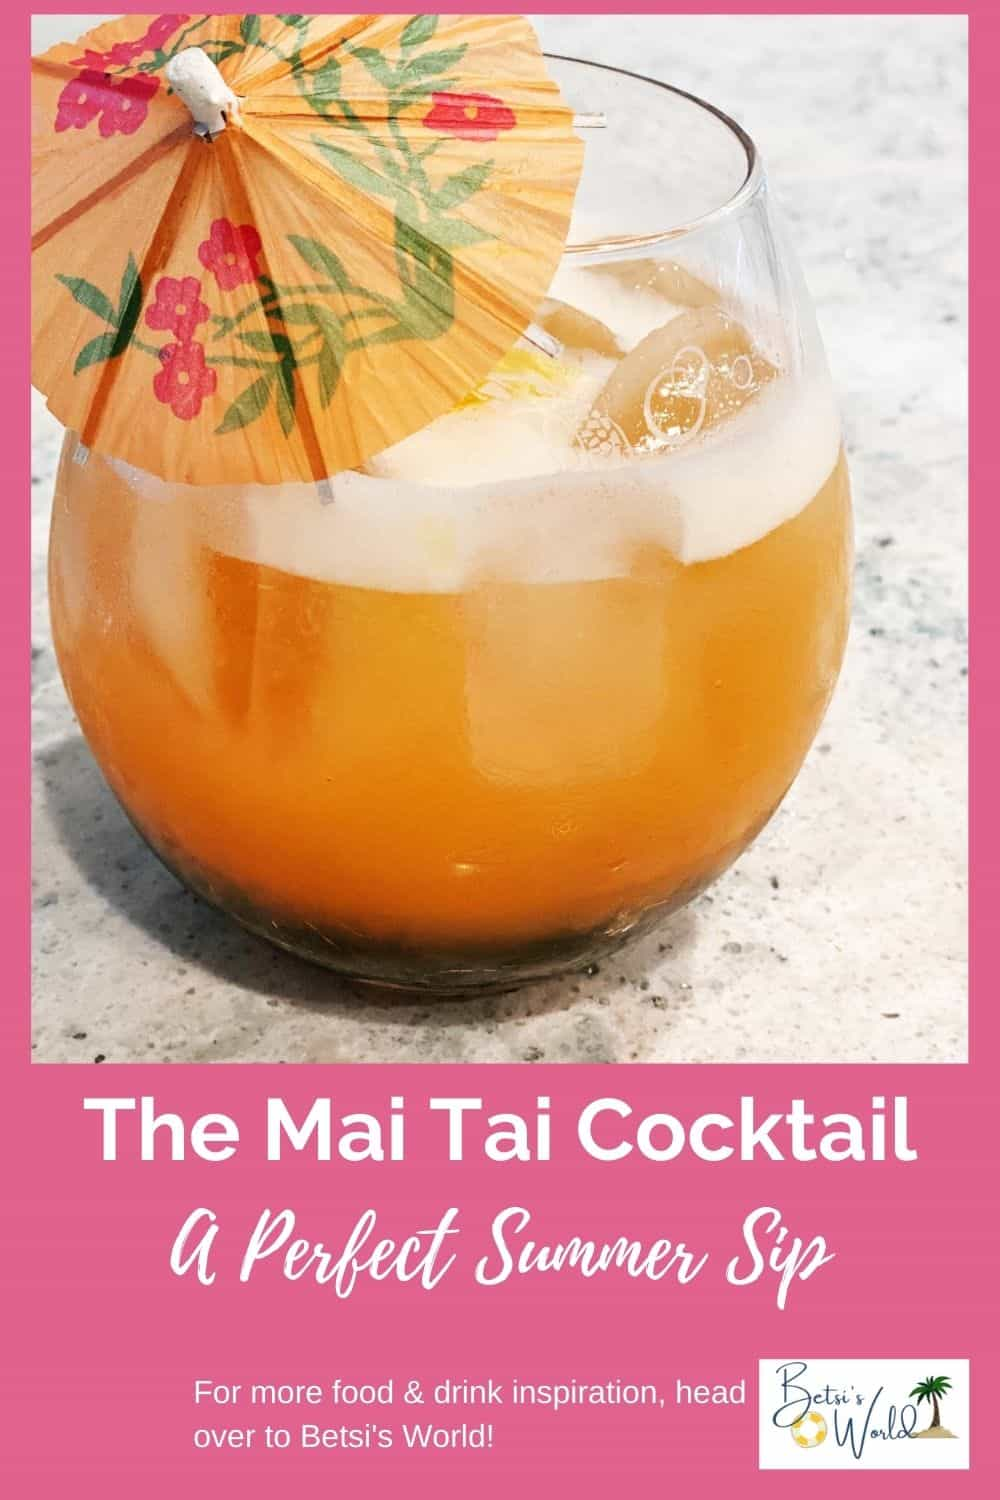 A Mai Thai cocktail is the perfect summer sipper for those hot, steamy summer days! This easy and refreshing cocktail is perfect for sipping by the pool, on the beach, or for an impromptu summer BBQ. #summercocktail #cocktails #maithai #easycocktail #rumcocktail